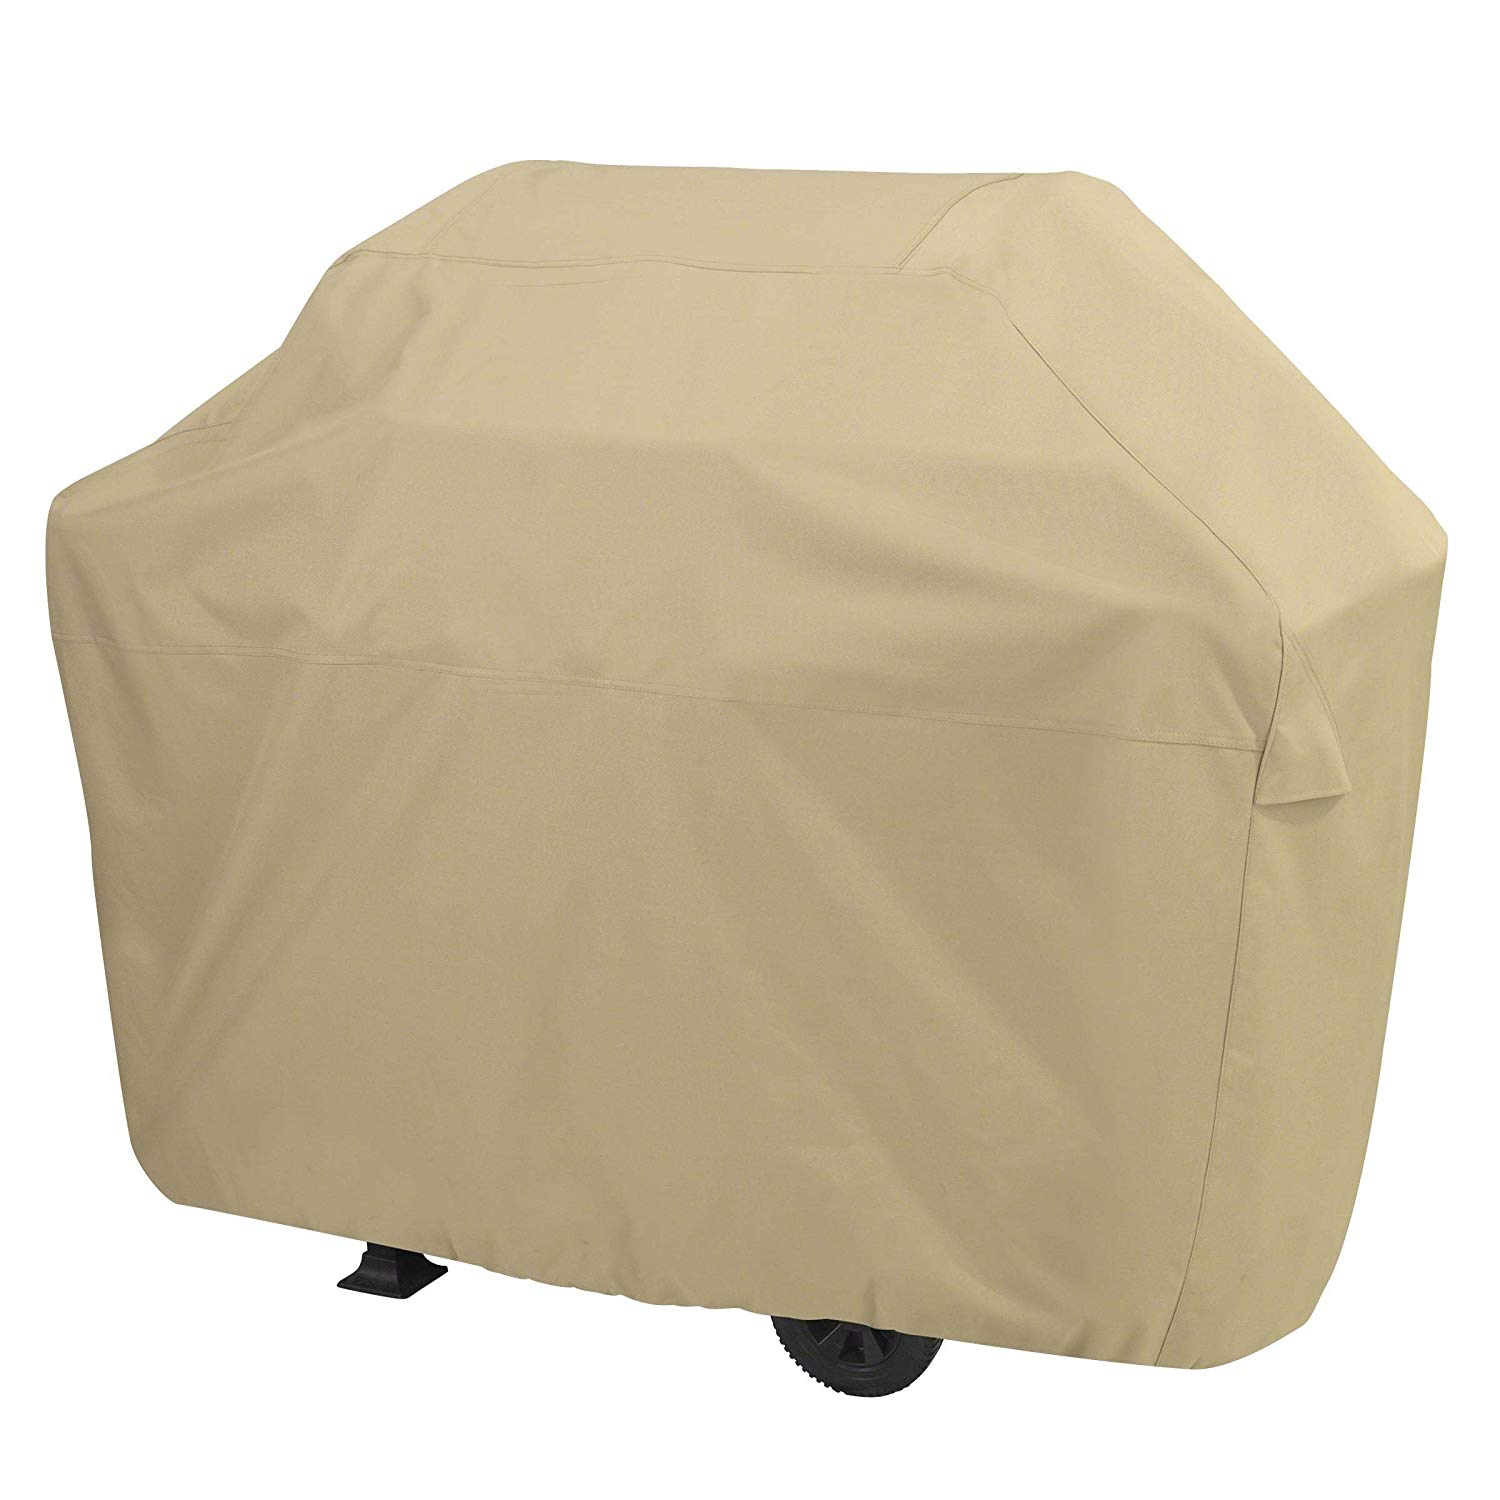 Ln 1 Piece Beige Gas Grill Cover 71 Inch, Water Resistant BBQ Cover Xx Large Patio Outdoor Barbecue Cover Durable Heavy Duty Material No Side Zippers Side Closure Zipper Line Grill Secure, Polyester